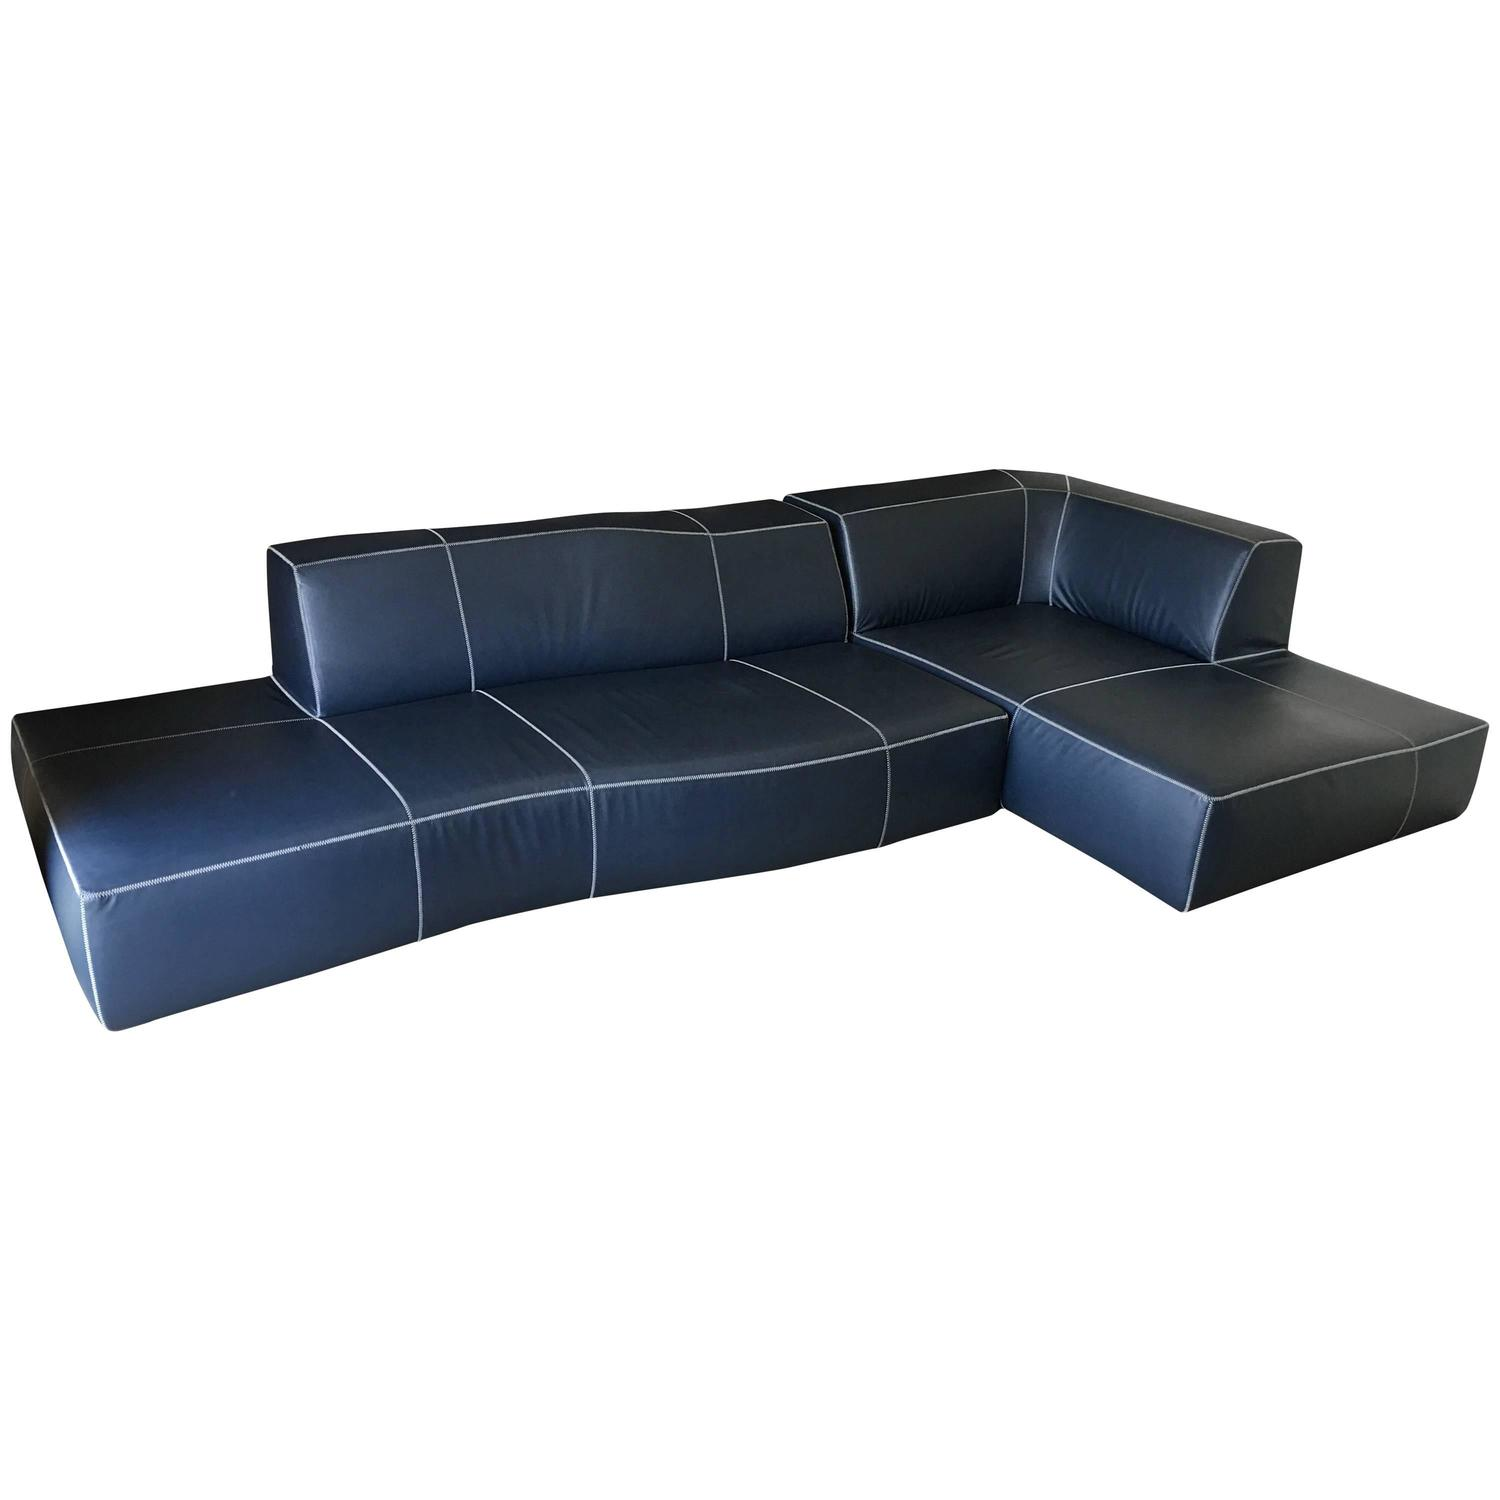 B B Italia Modular Bend Sectional Sofa At 1stdibs